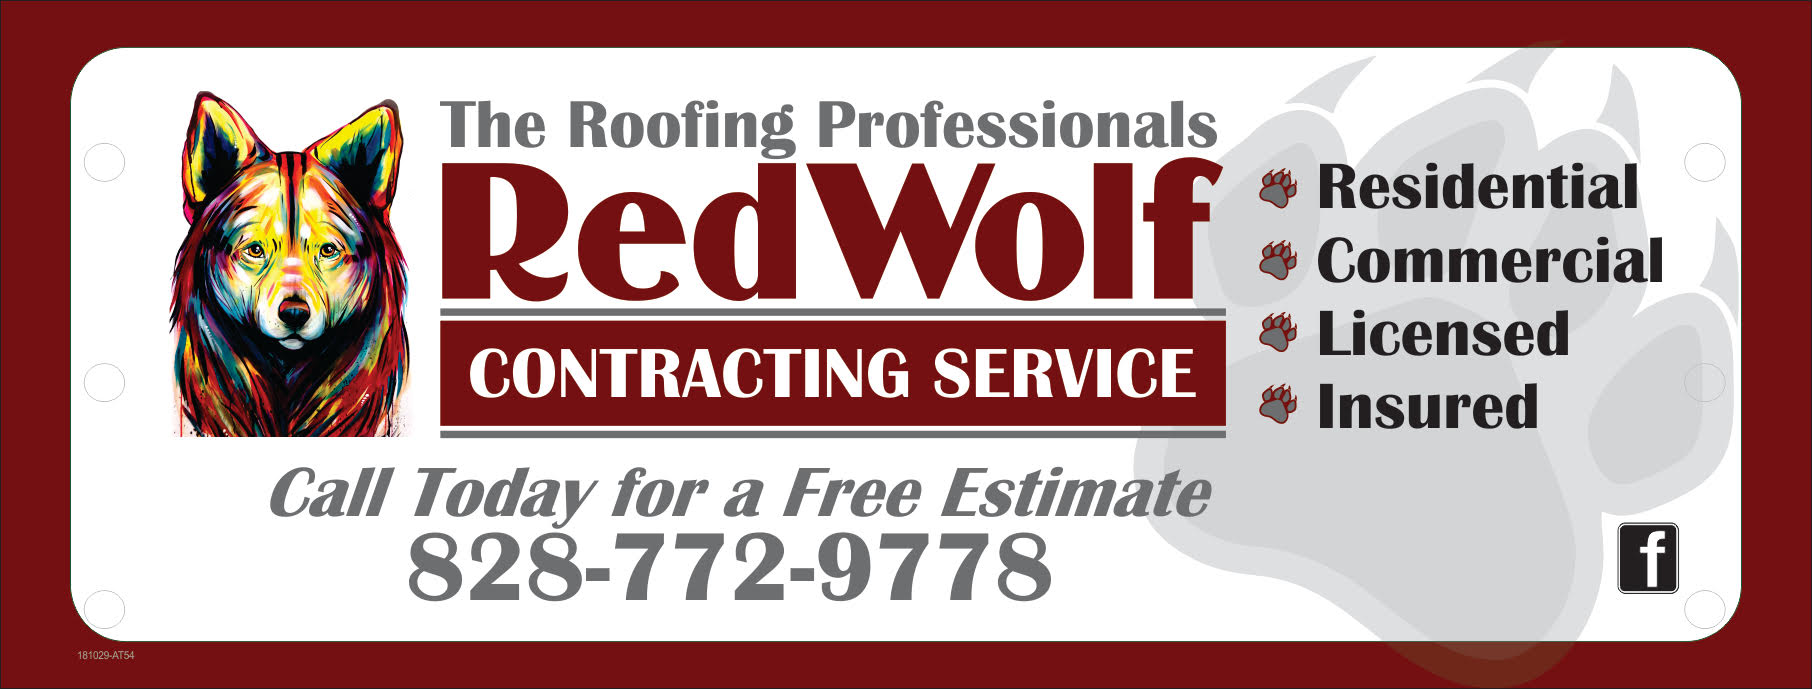 With a trusted name and reputation to back it up, Matt and the folks at RedWolf Contracting Service are the ones to call if you are in need of roofing repairs or replacement. Give him a call (828)772-9778 or visit their website  nc-roofers.com  to set up your free roof evaluation today, and tell him that Hunter sent you!